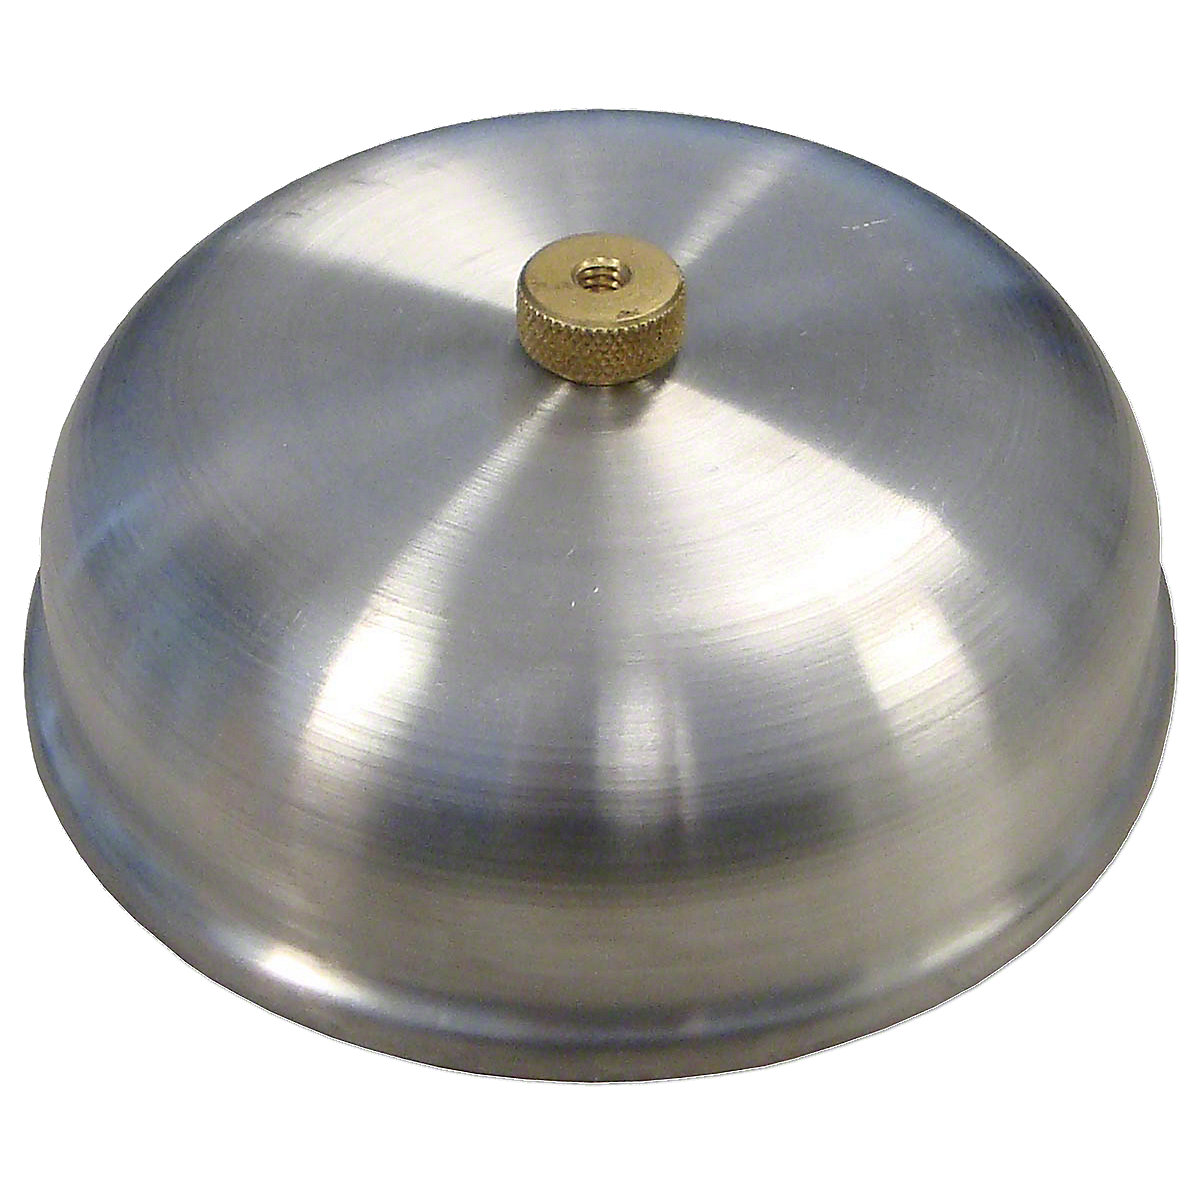 Aluminum Pre Cleaner Cover With Brass Knurled Nut For Allis Chalmers: D15, I60.